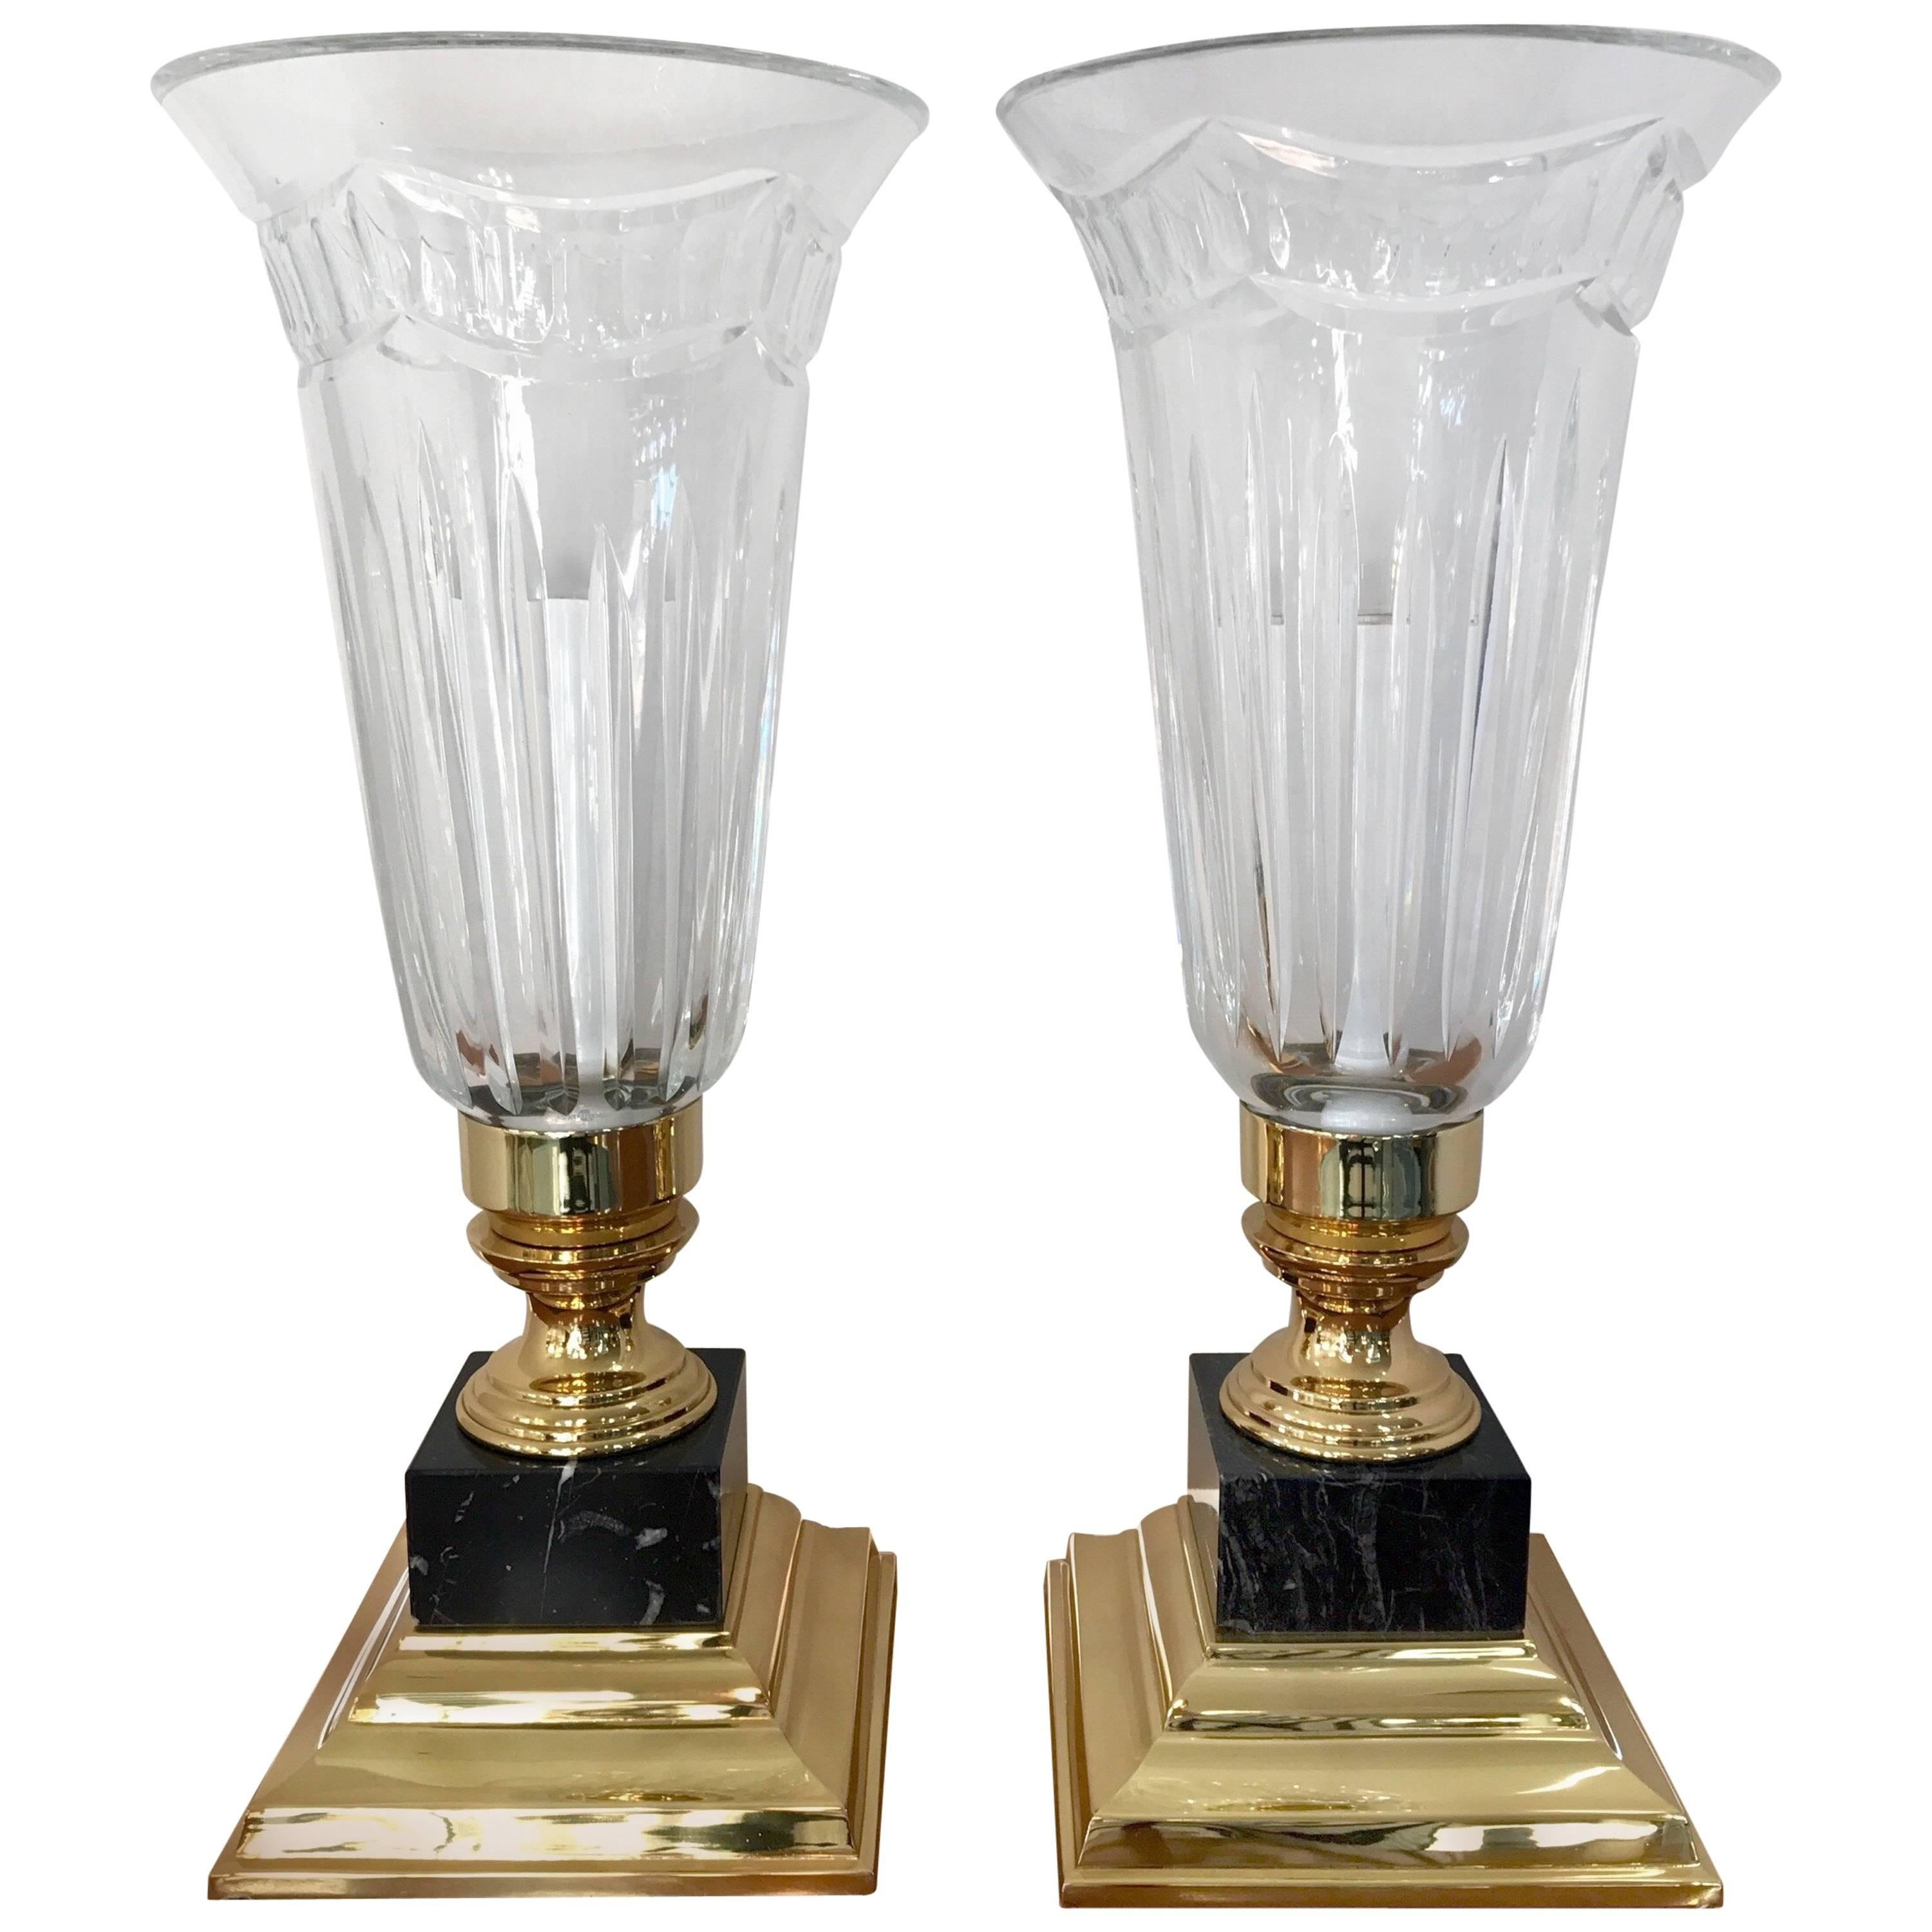 Pair Of Waterford Crystal Electric Hurricane Lamps Pompeii Marble Base For  Sale